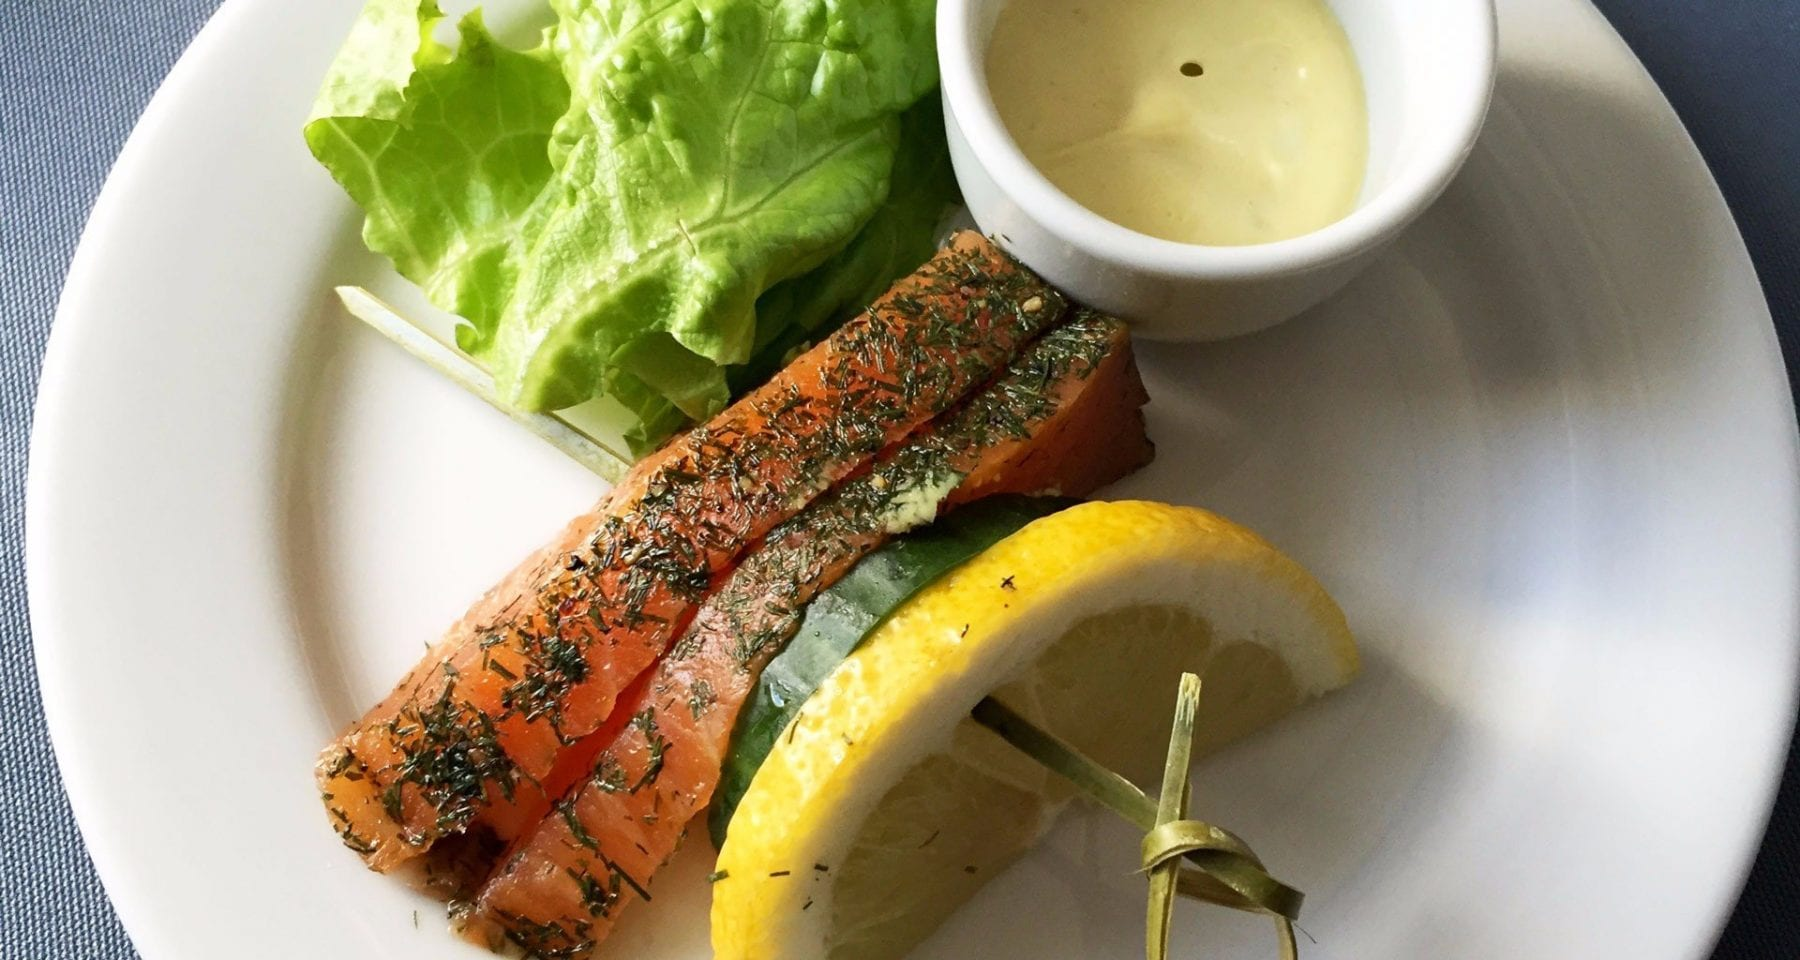 united airlines business class salmon meal